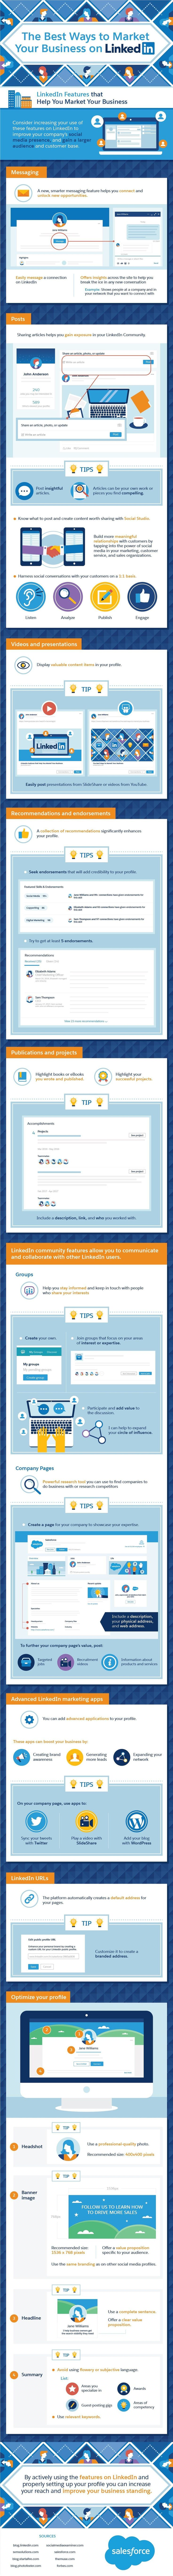 The Best Ways to Market Your Business on LinkedIn [Infographic] - http://topseosoft.com/the-best-ways-to-market-your-business-on-linkedin-infographic/